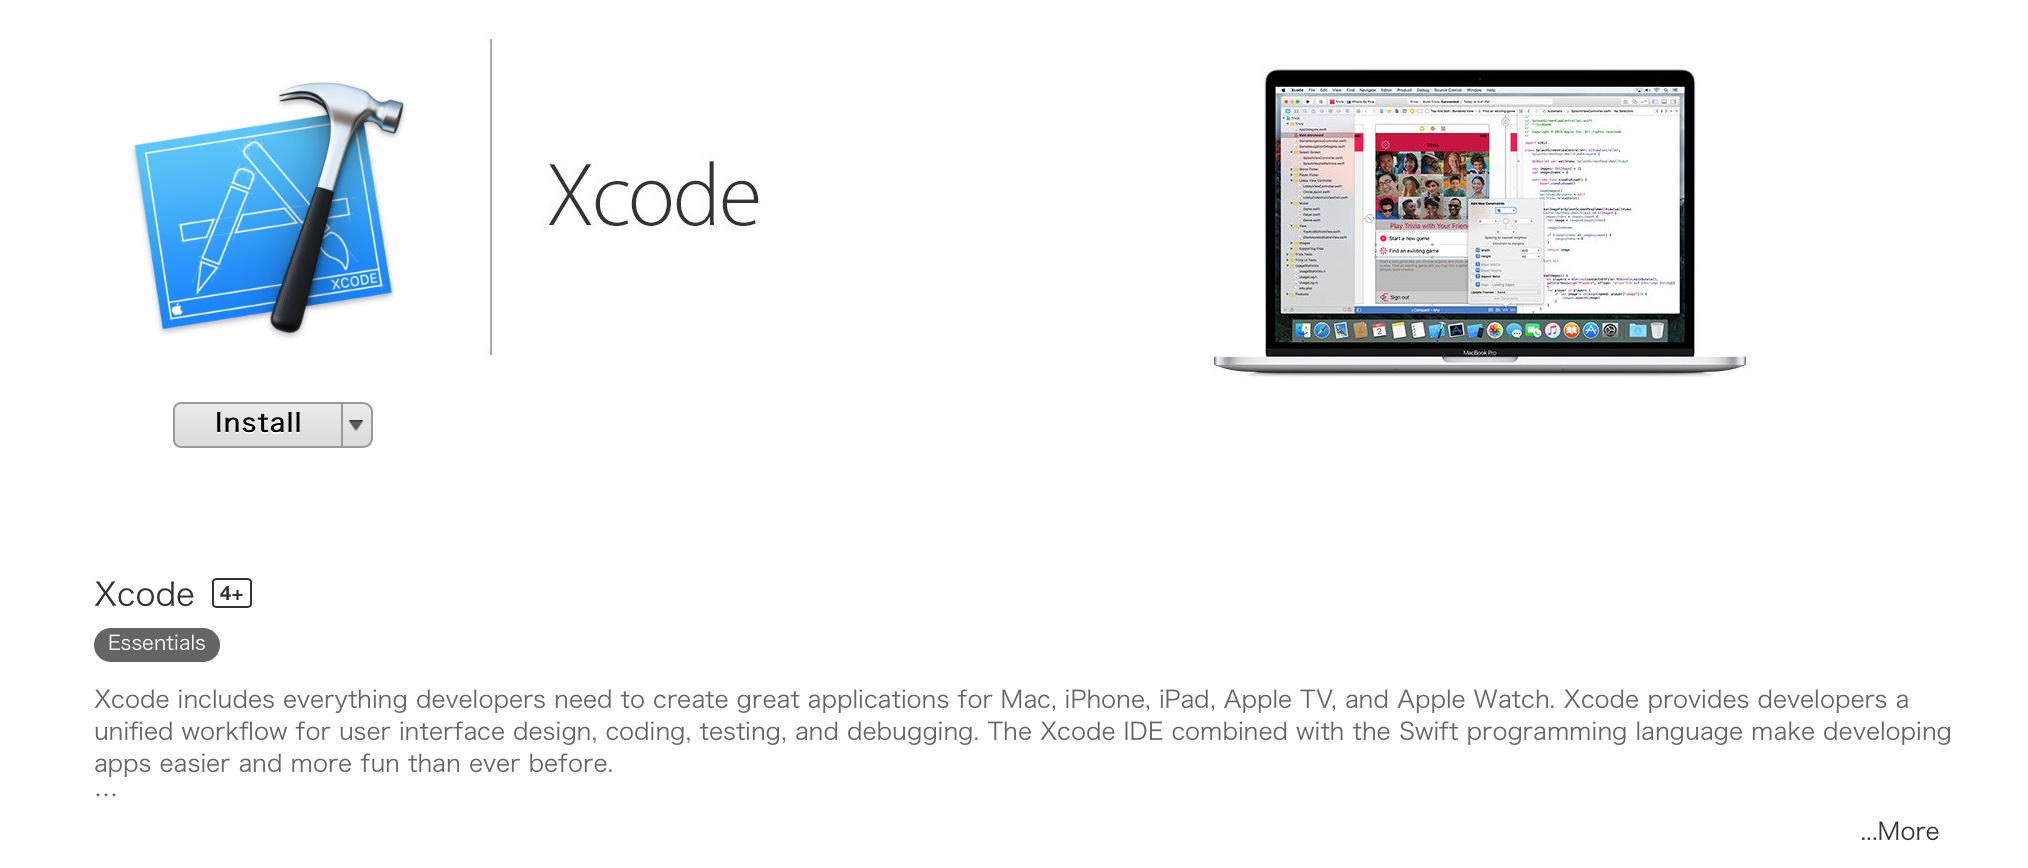 Newest Official Xcode / Mac App Store - 2018-06-07 at 03.01.28.png